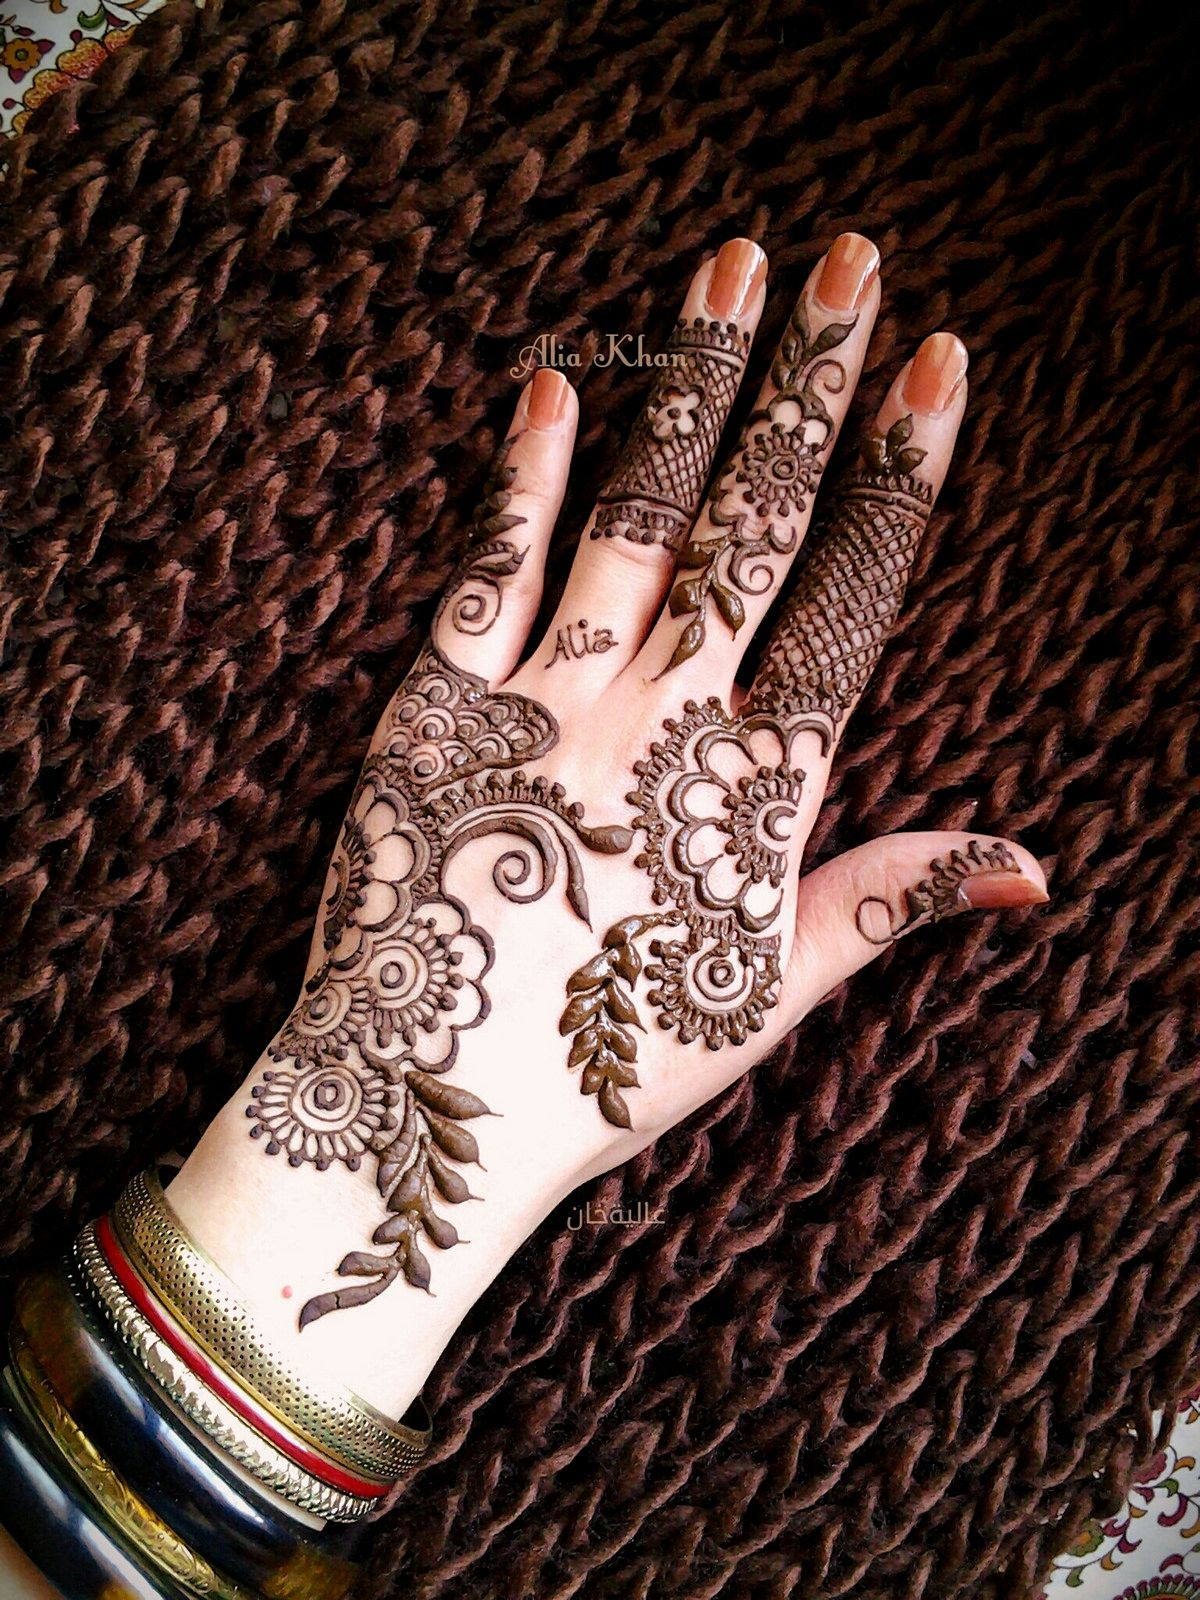 1000 ideas about traditional henna designs on pinterest traditional - Henna Design Ebooks From Artistic Adornment Inspiration And Licences For Party Henna Designs Bridal Mehndi And